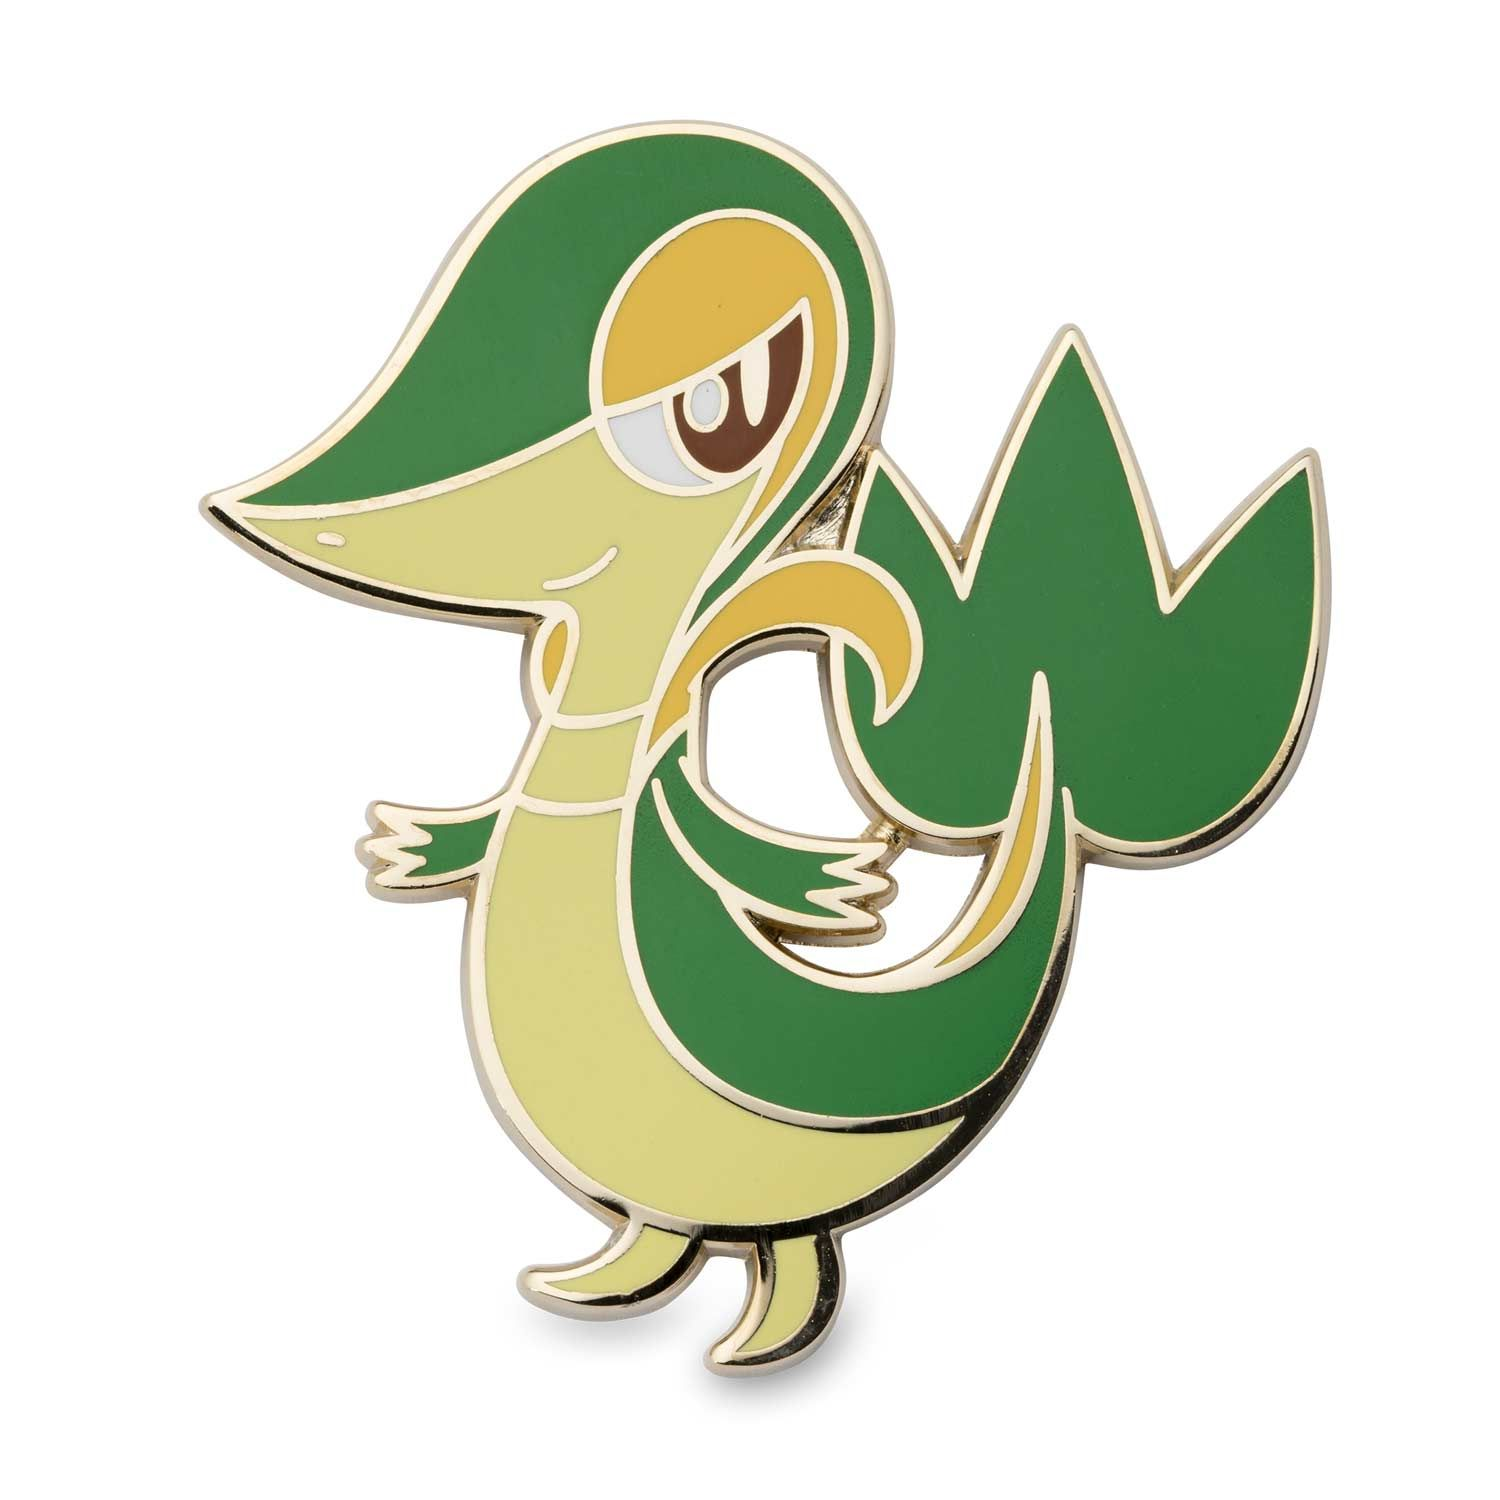 Official Pokemon Pins For 4 Popular Characters